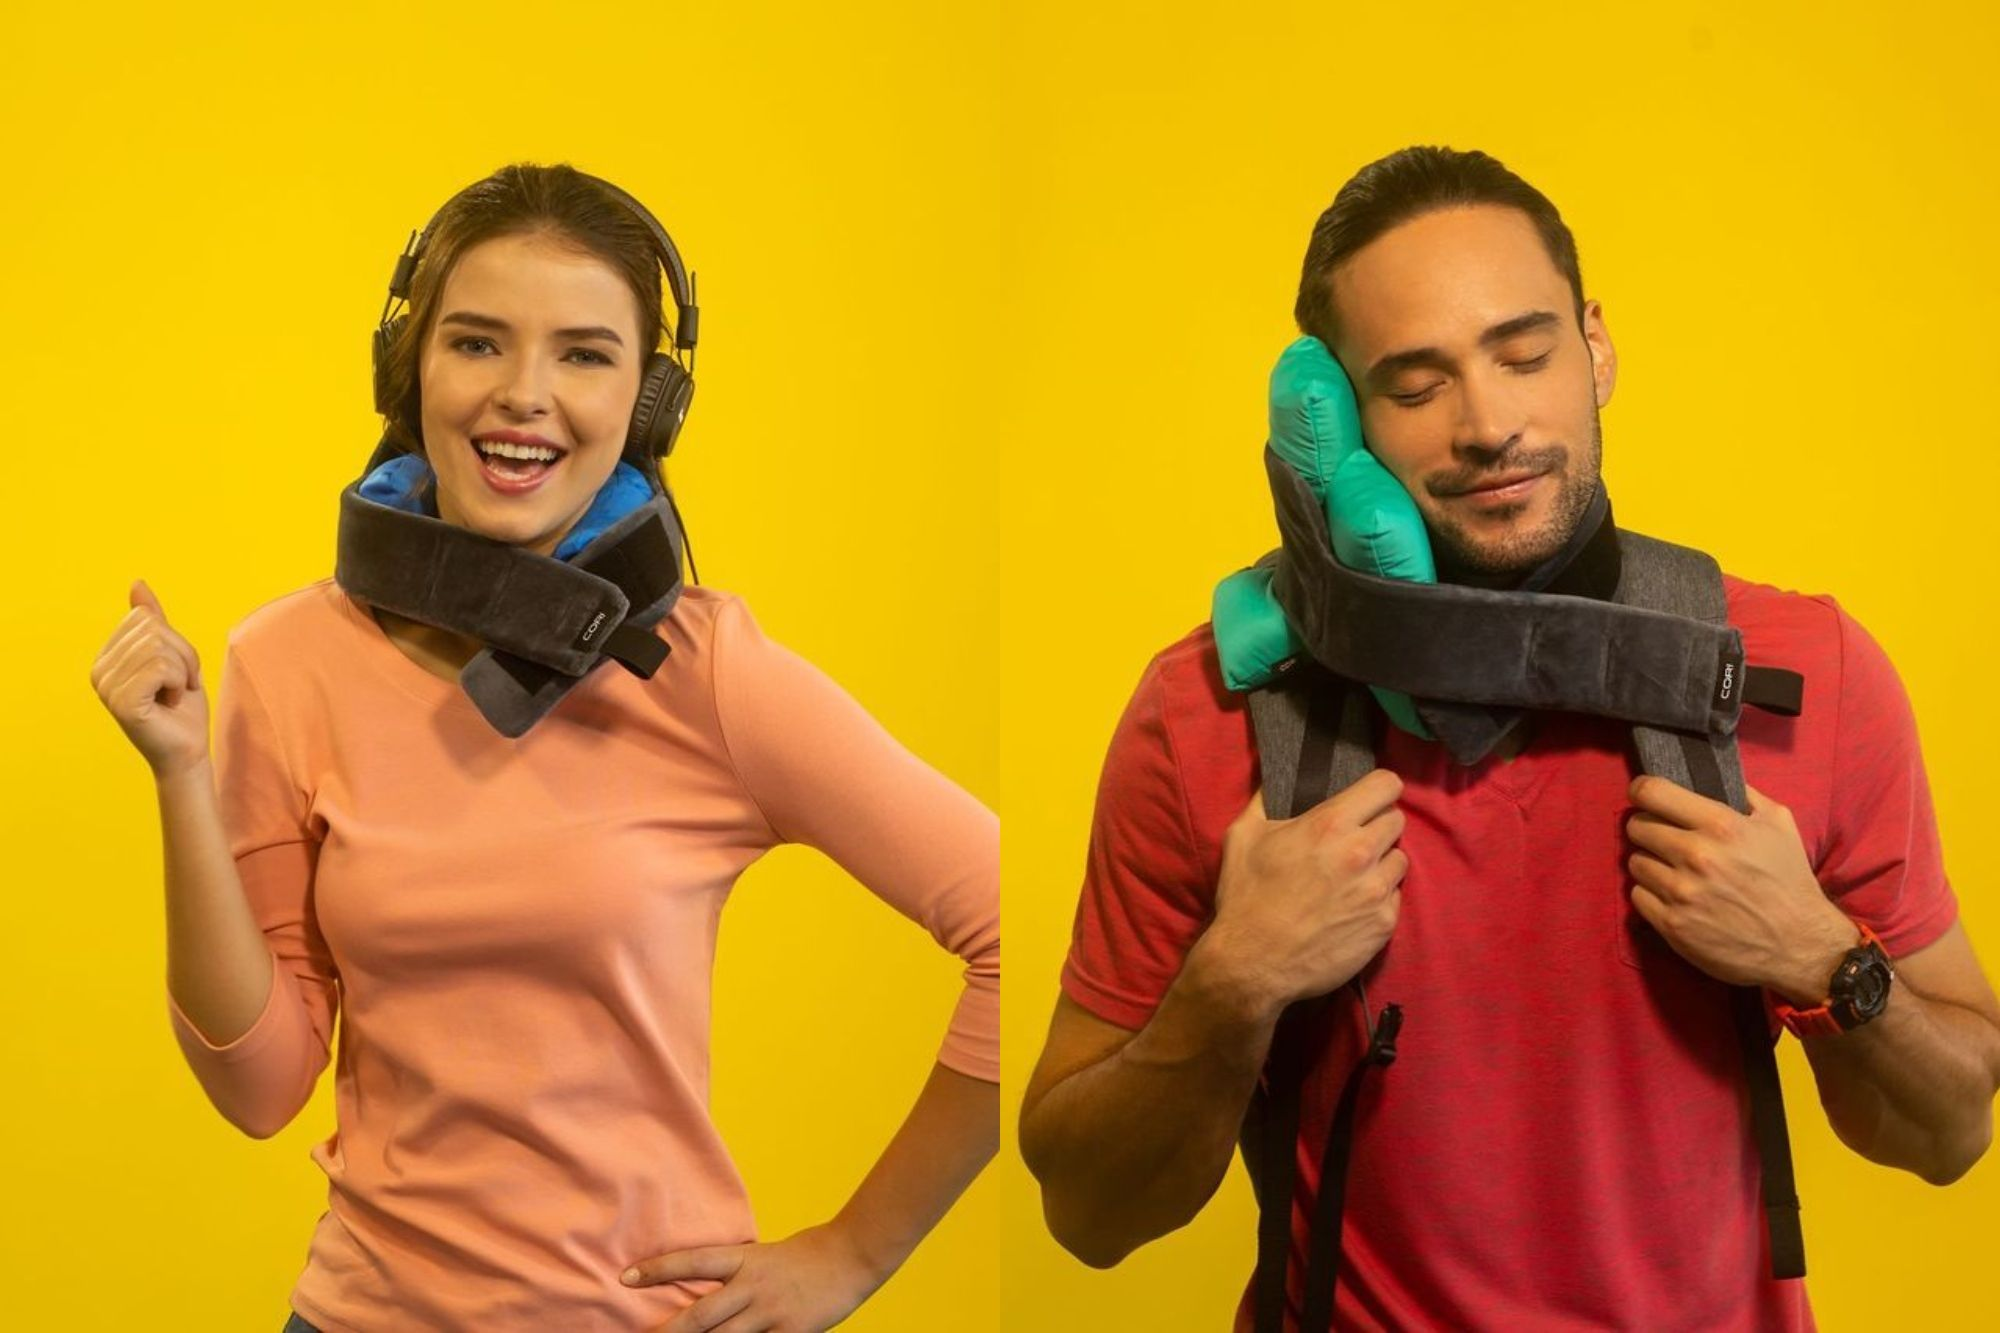 Catch Up on Sleep Anywhere with This Customizable Travel Pillow